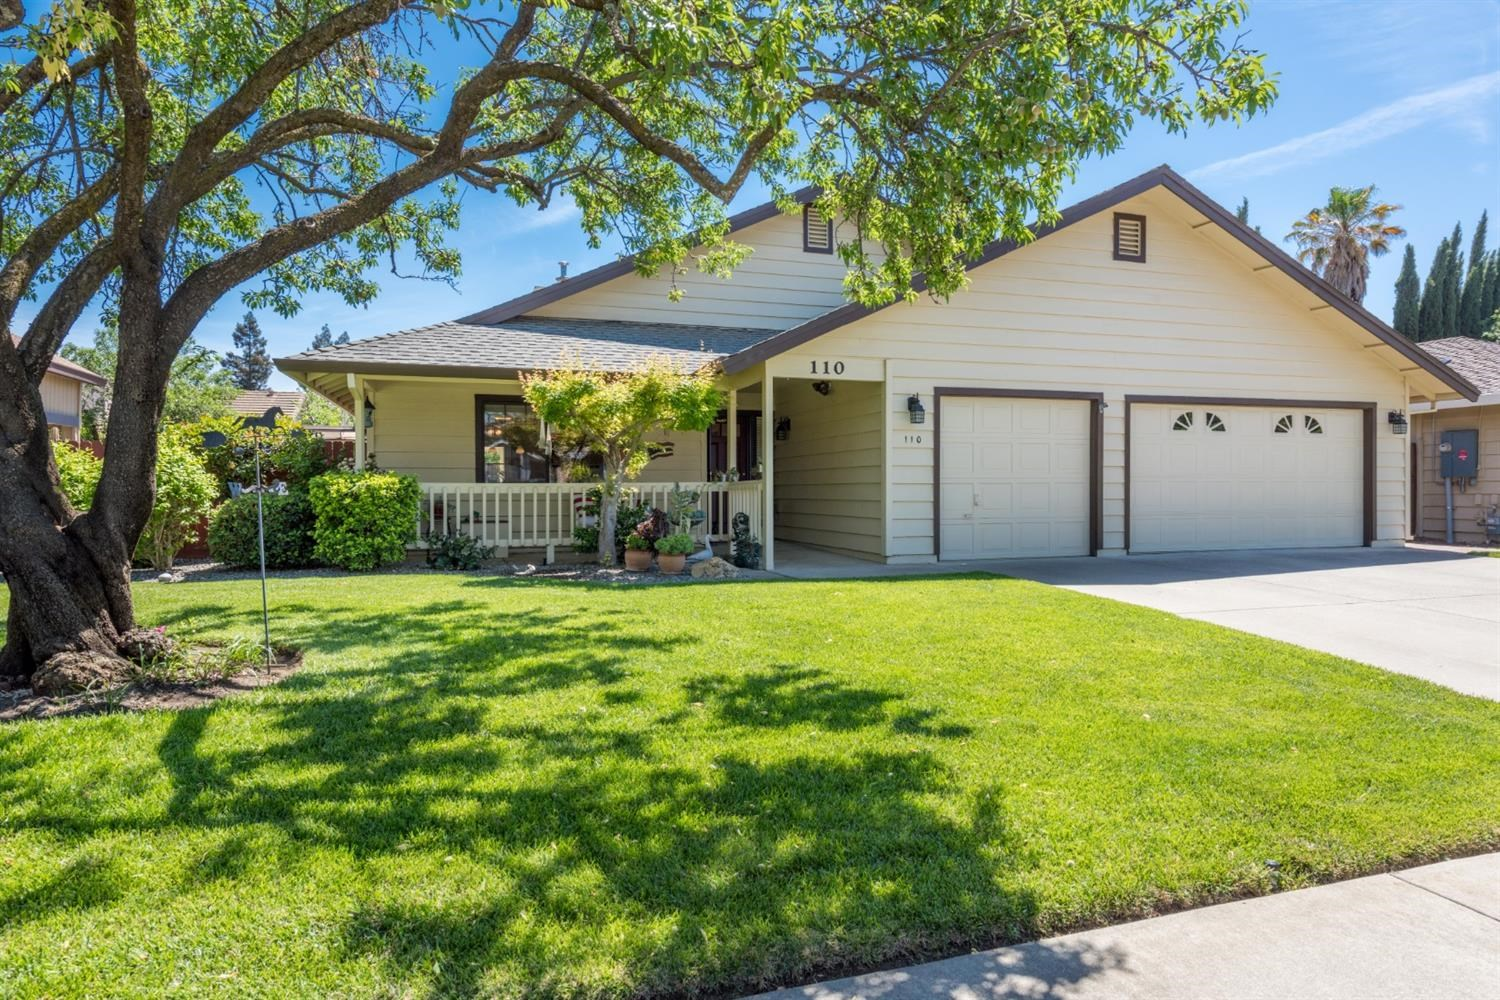 Winters, CA Single Story Homes For Sale